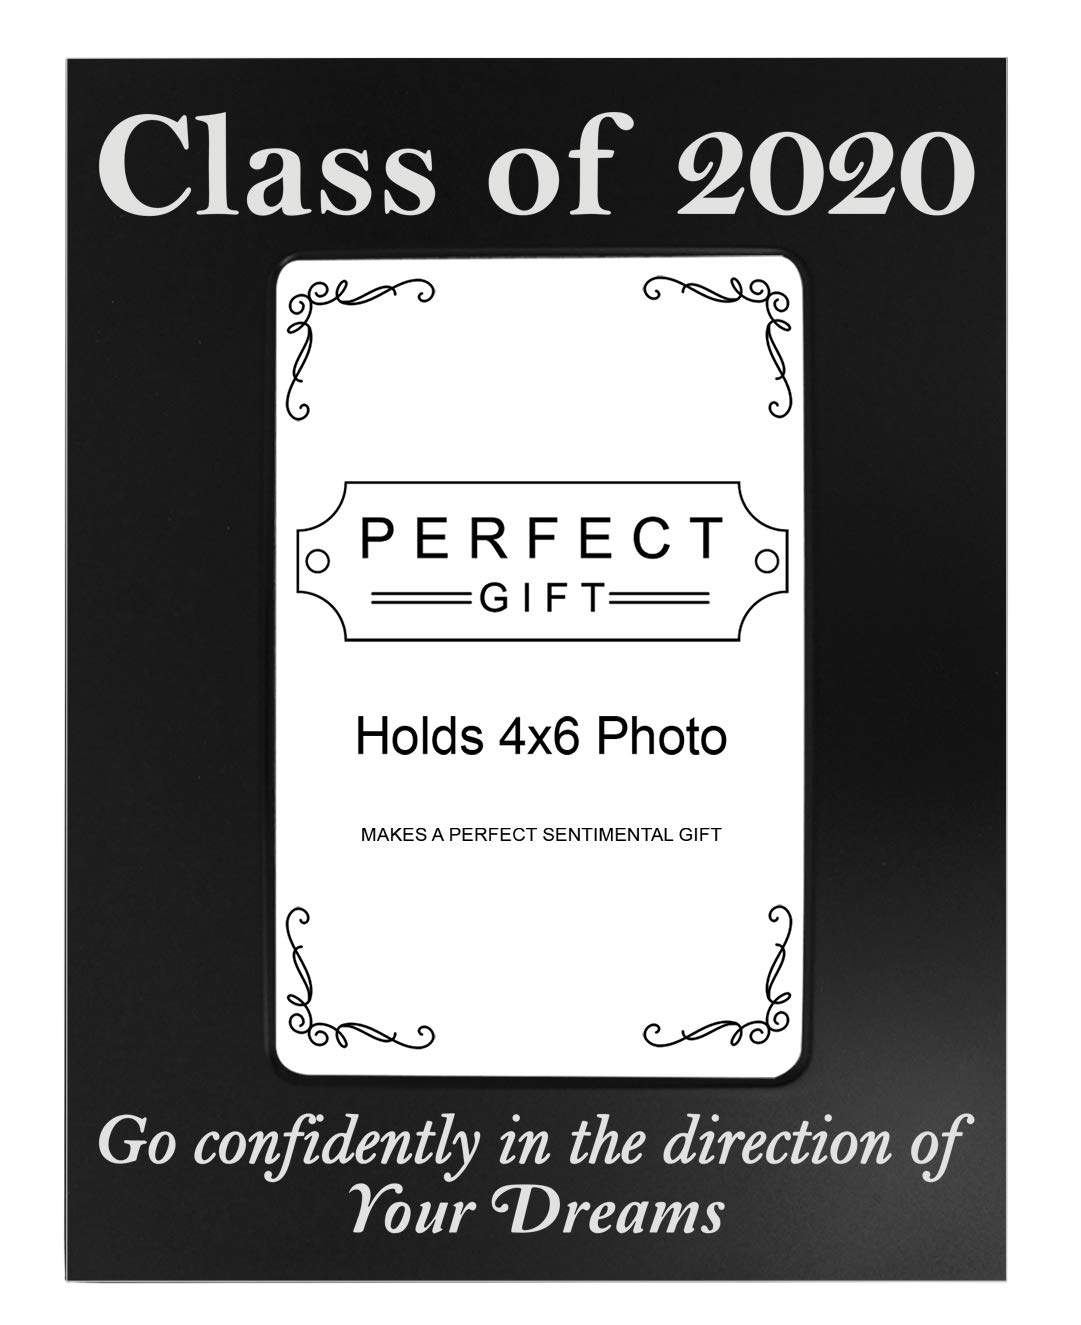 Graduation Frames 2020.Amazon Com Thiswear Graduation Frame Class Of 2020 Go